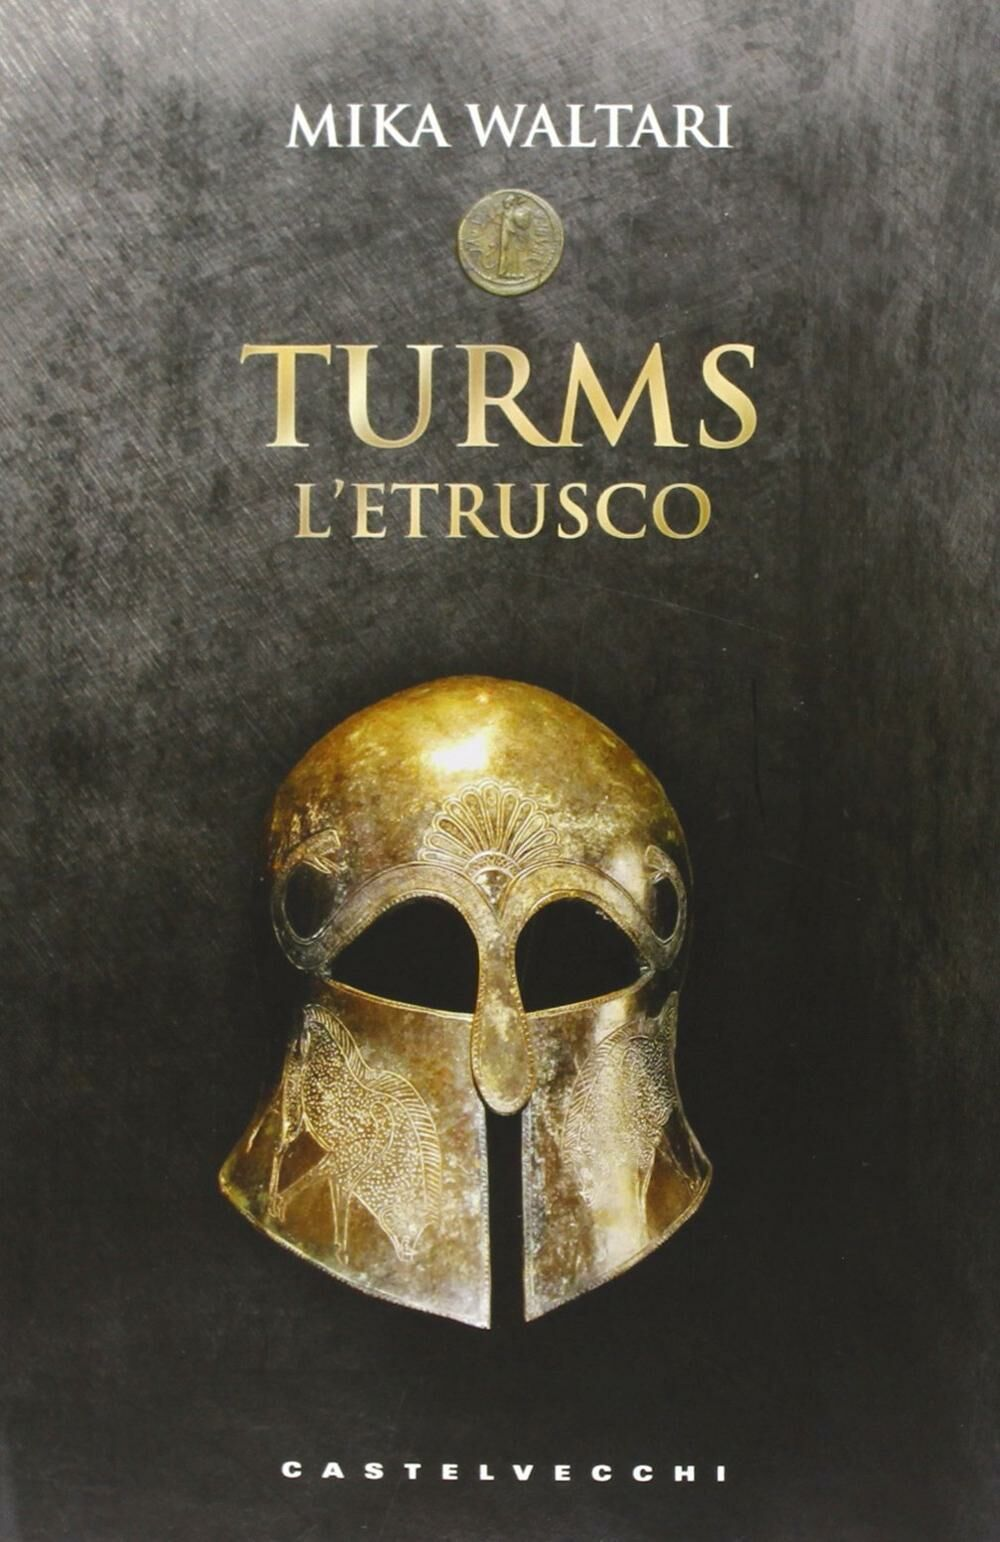 Turms l'etrusco